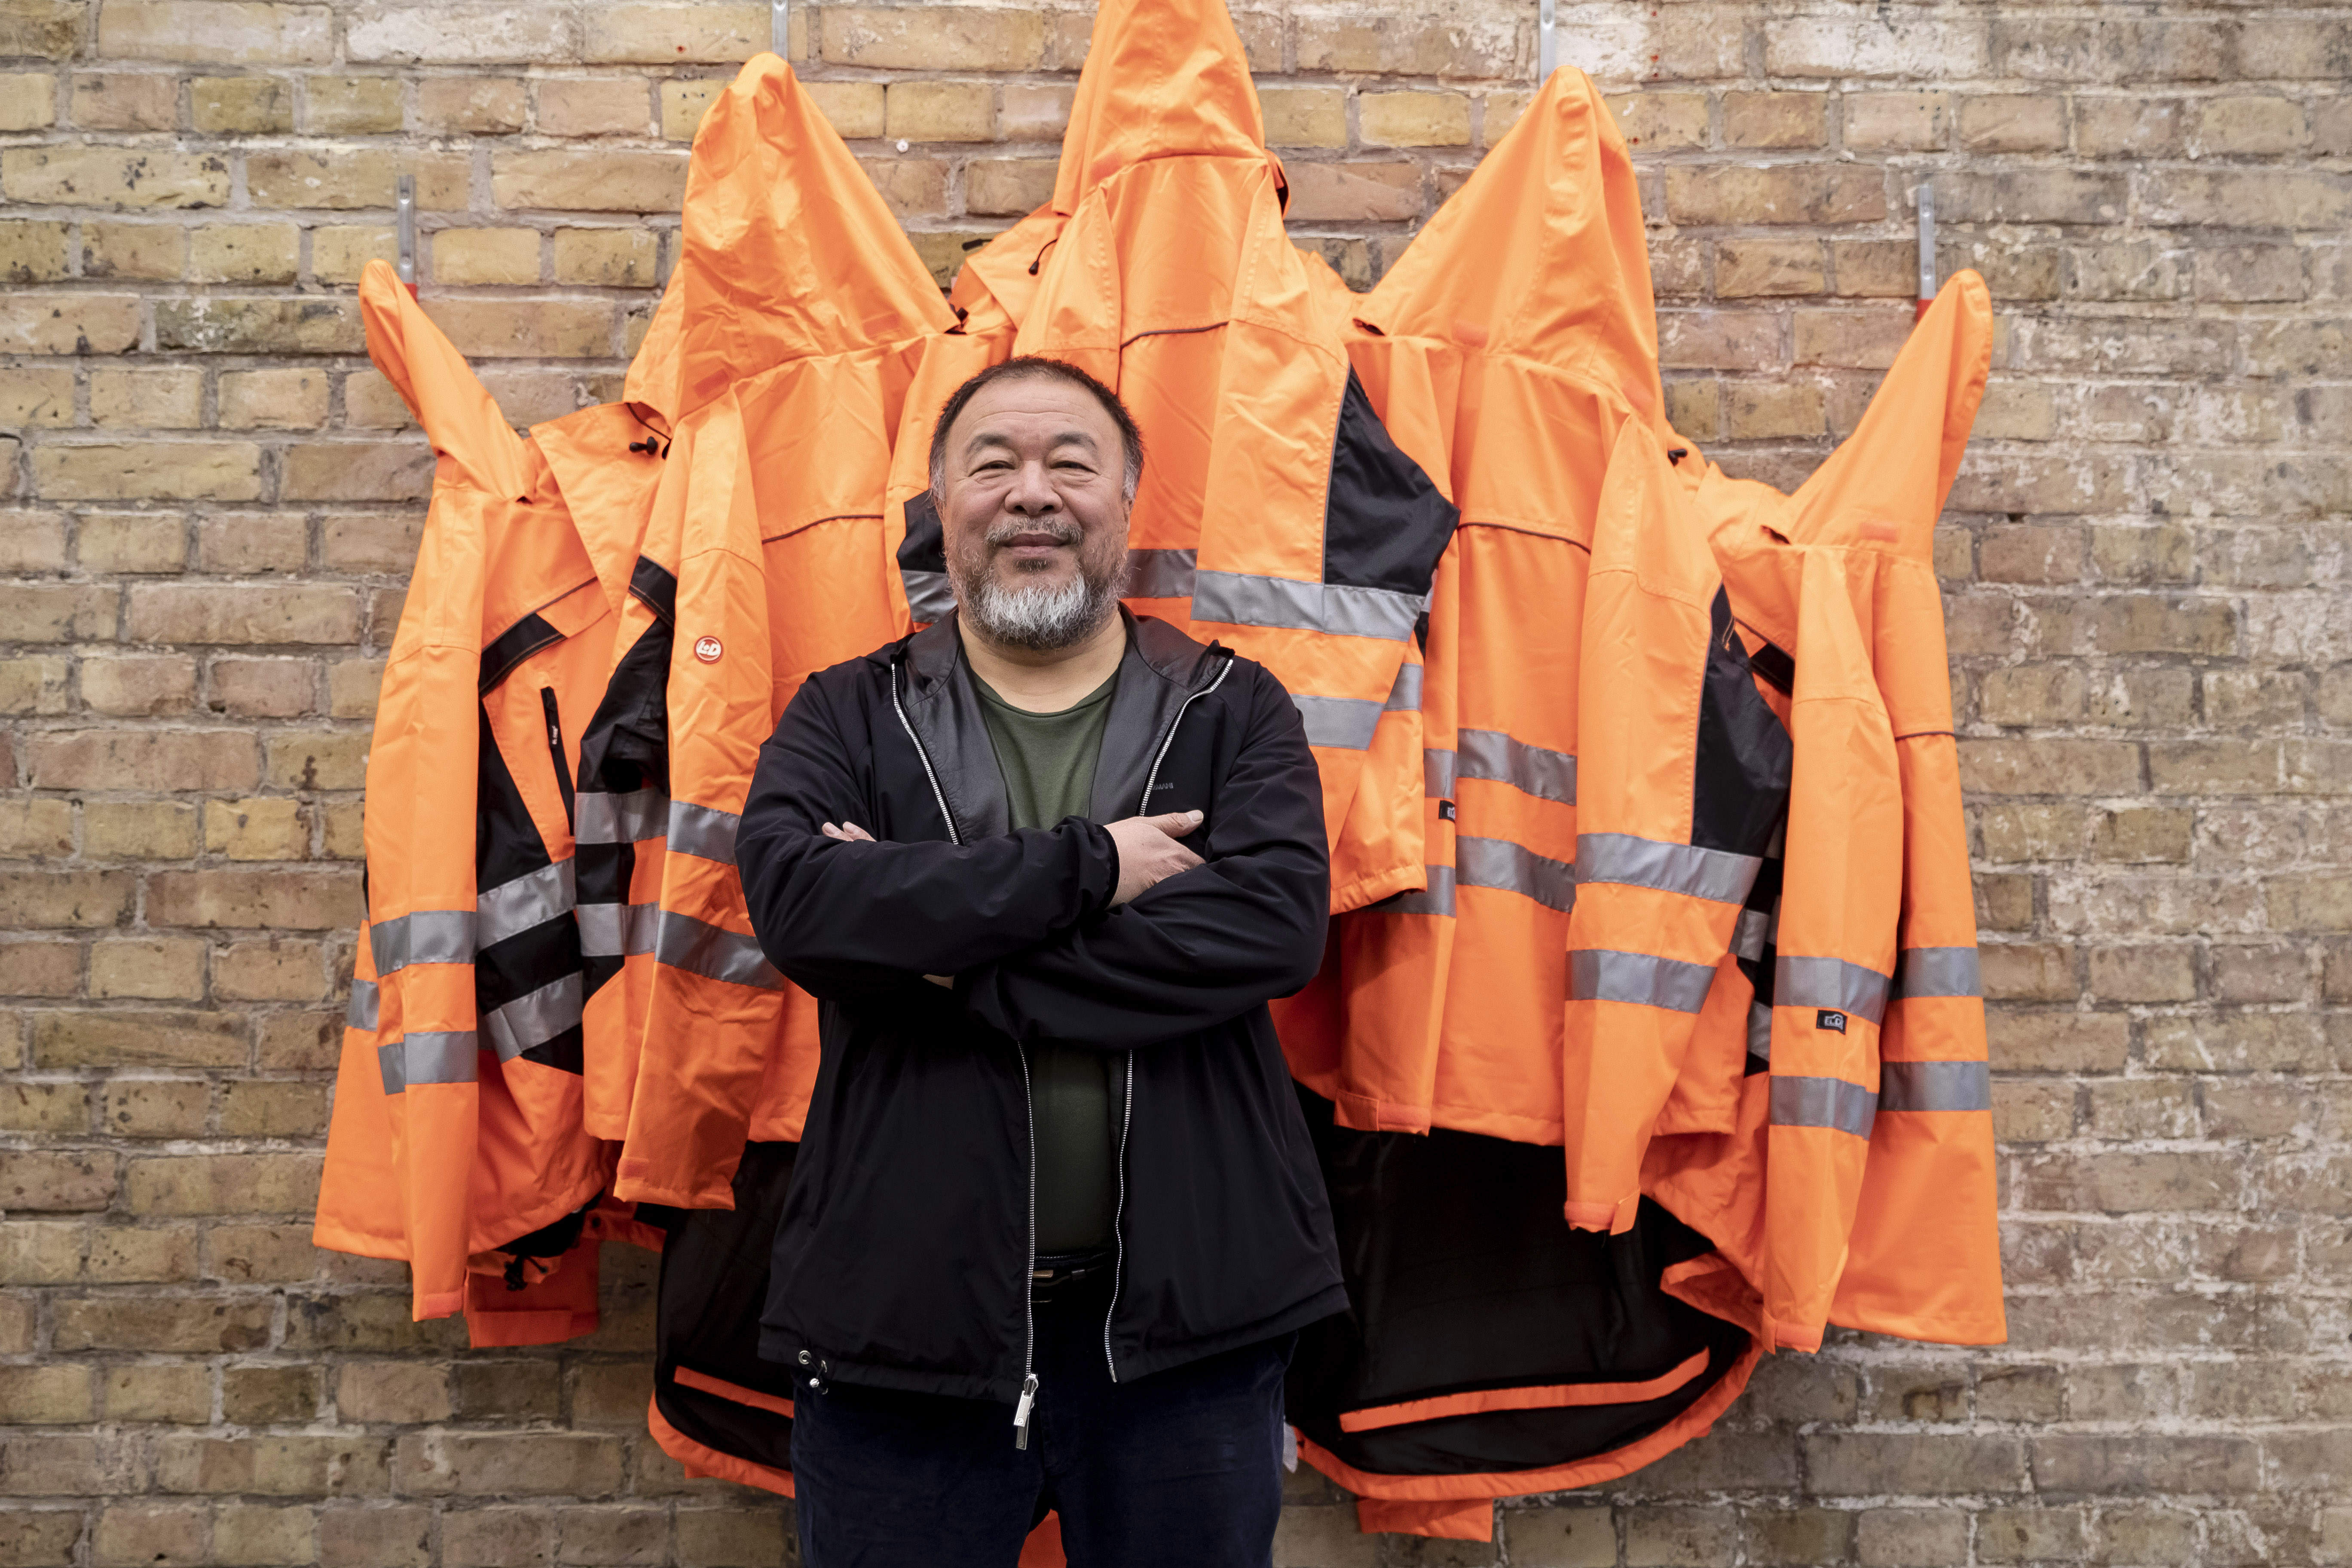 Ai Weiwei Is Now Selling Direct-to-Consumer Sculpture That You Can Assemble at Home